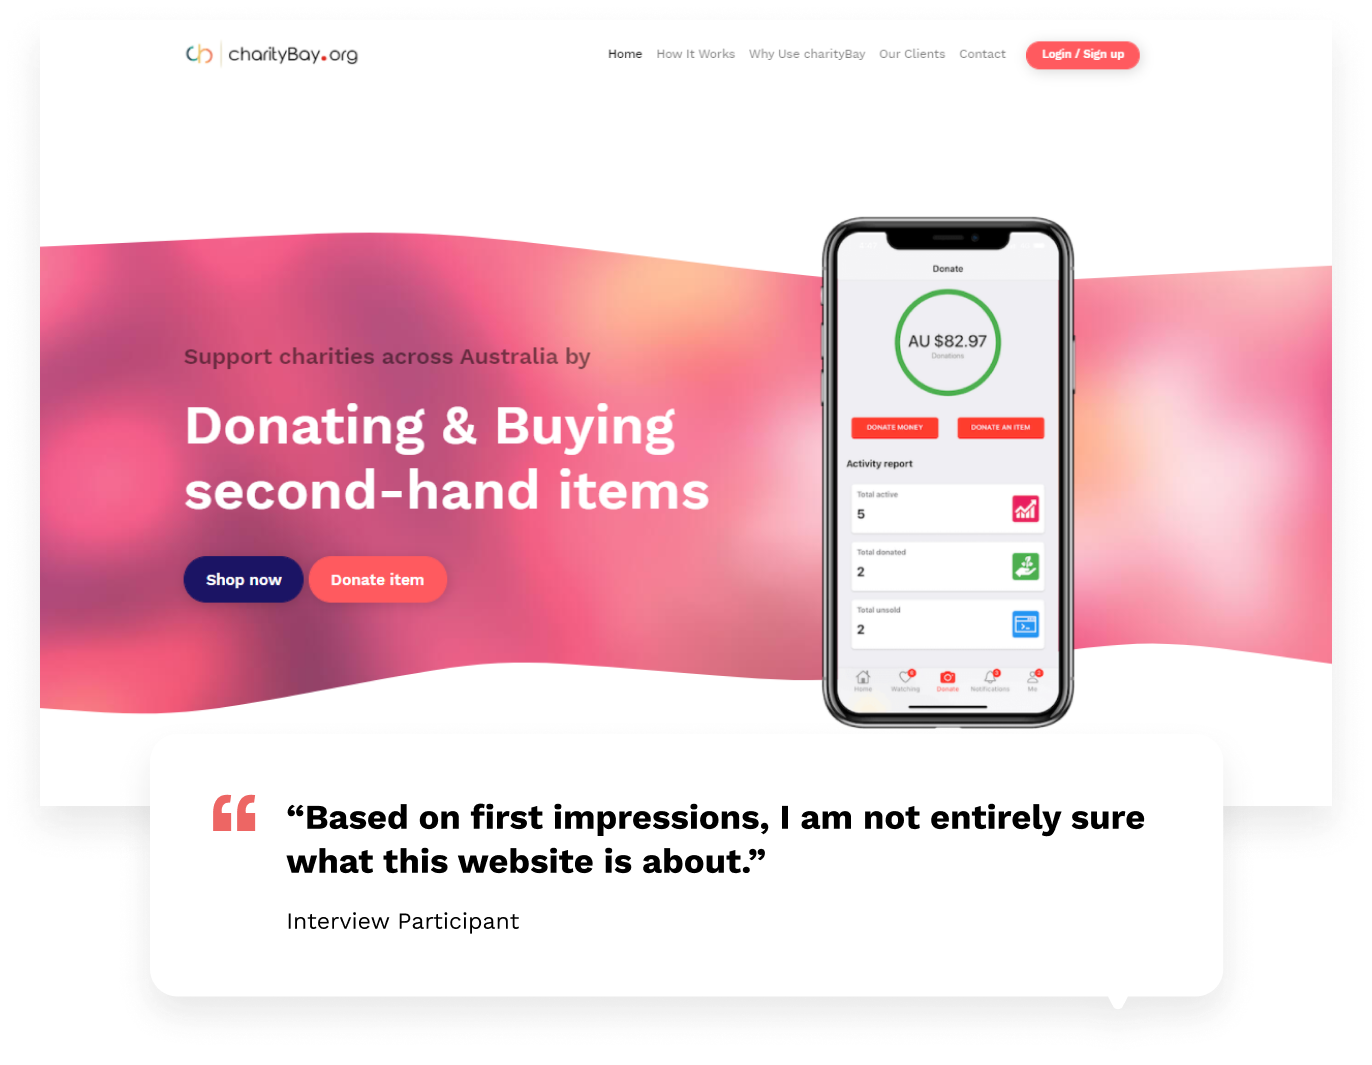 charityBay Case Study Interview Findings